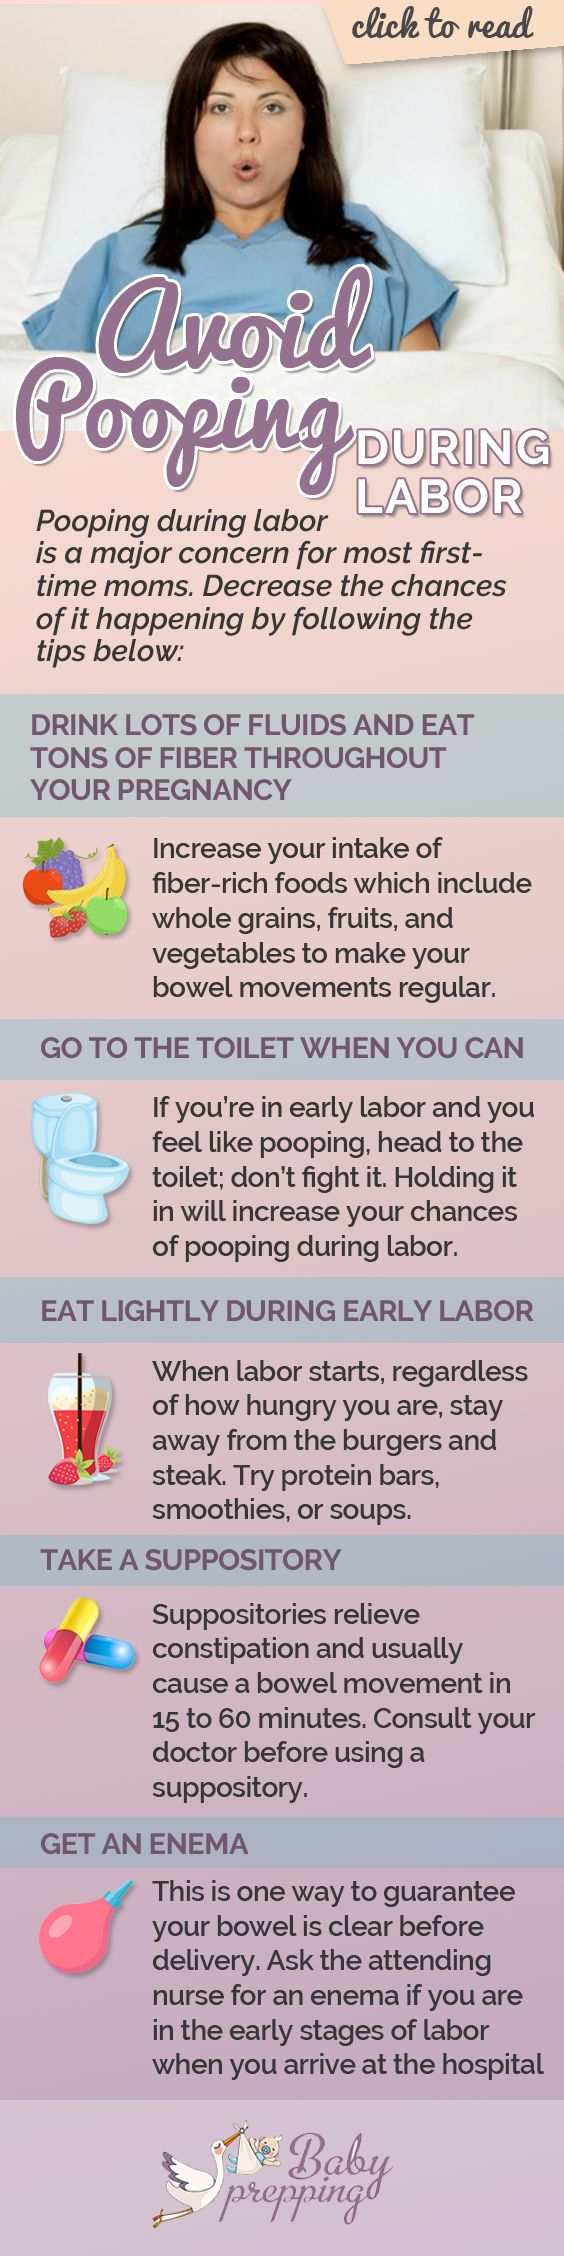 5 Tips to Avoid Pooping during Labor   Babyprepping.com